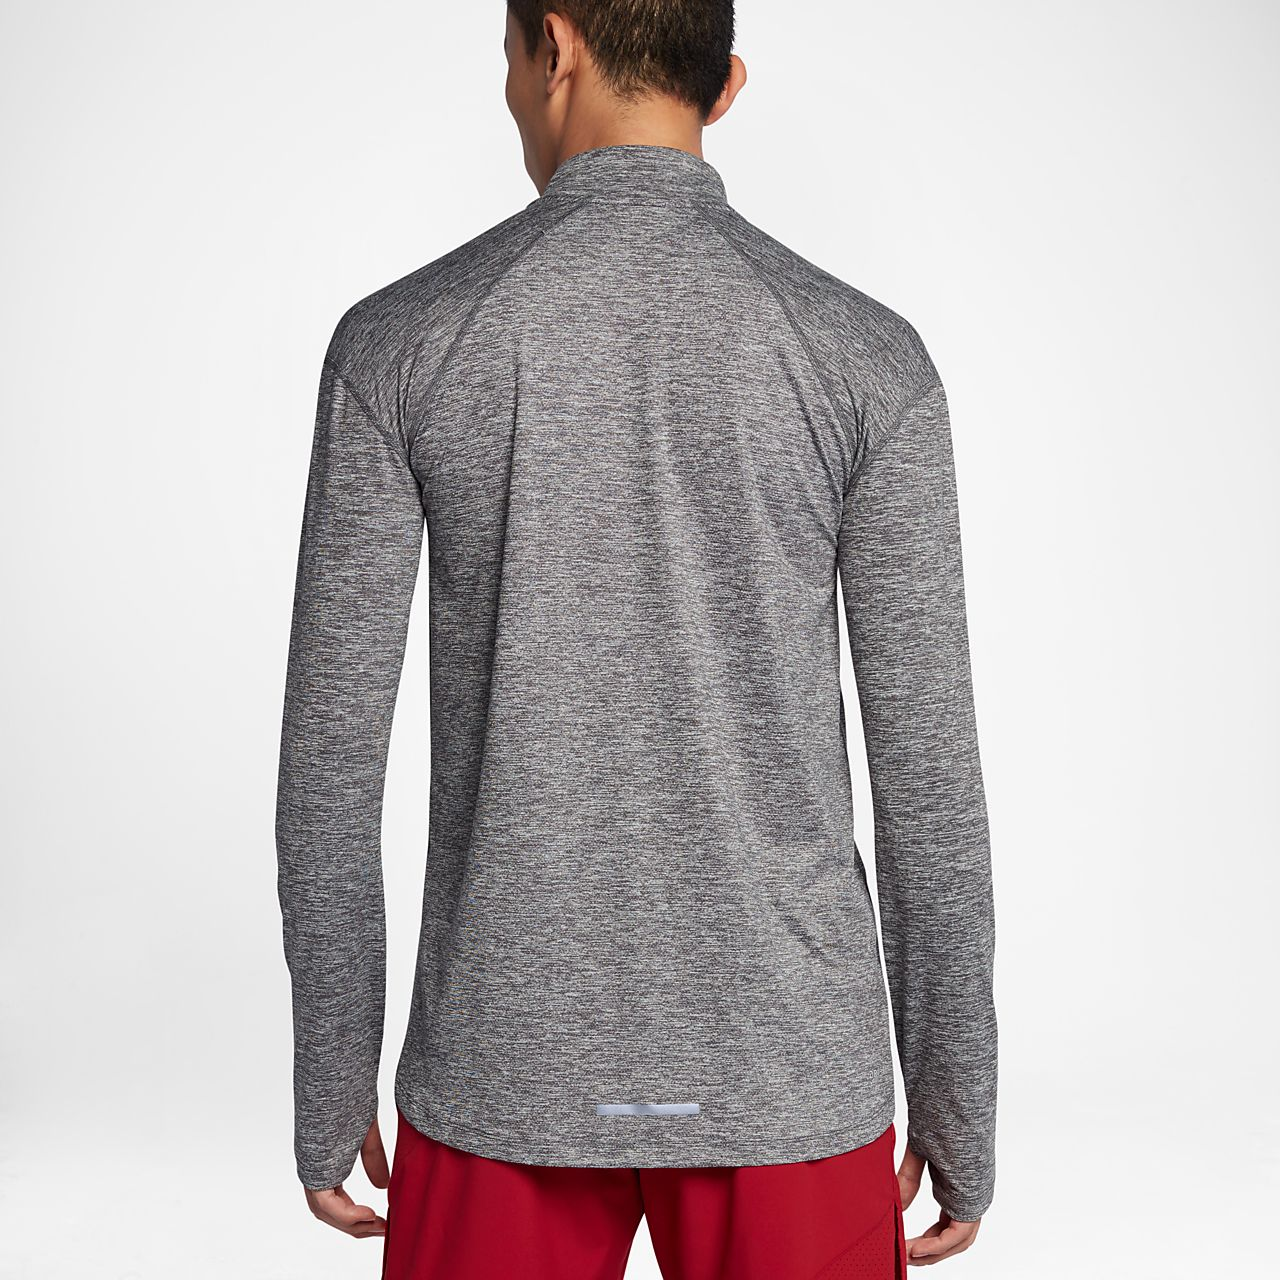 Clearance Great Deals Clearance For Cheap Element Long Sleeve Top In Grey - Grey Nike Wiki Sale Online Free Shipping Largest Supplier 2NVw2qN